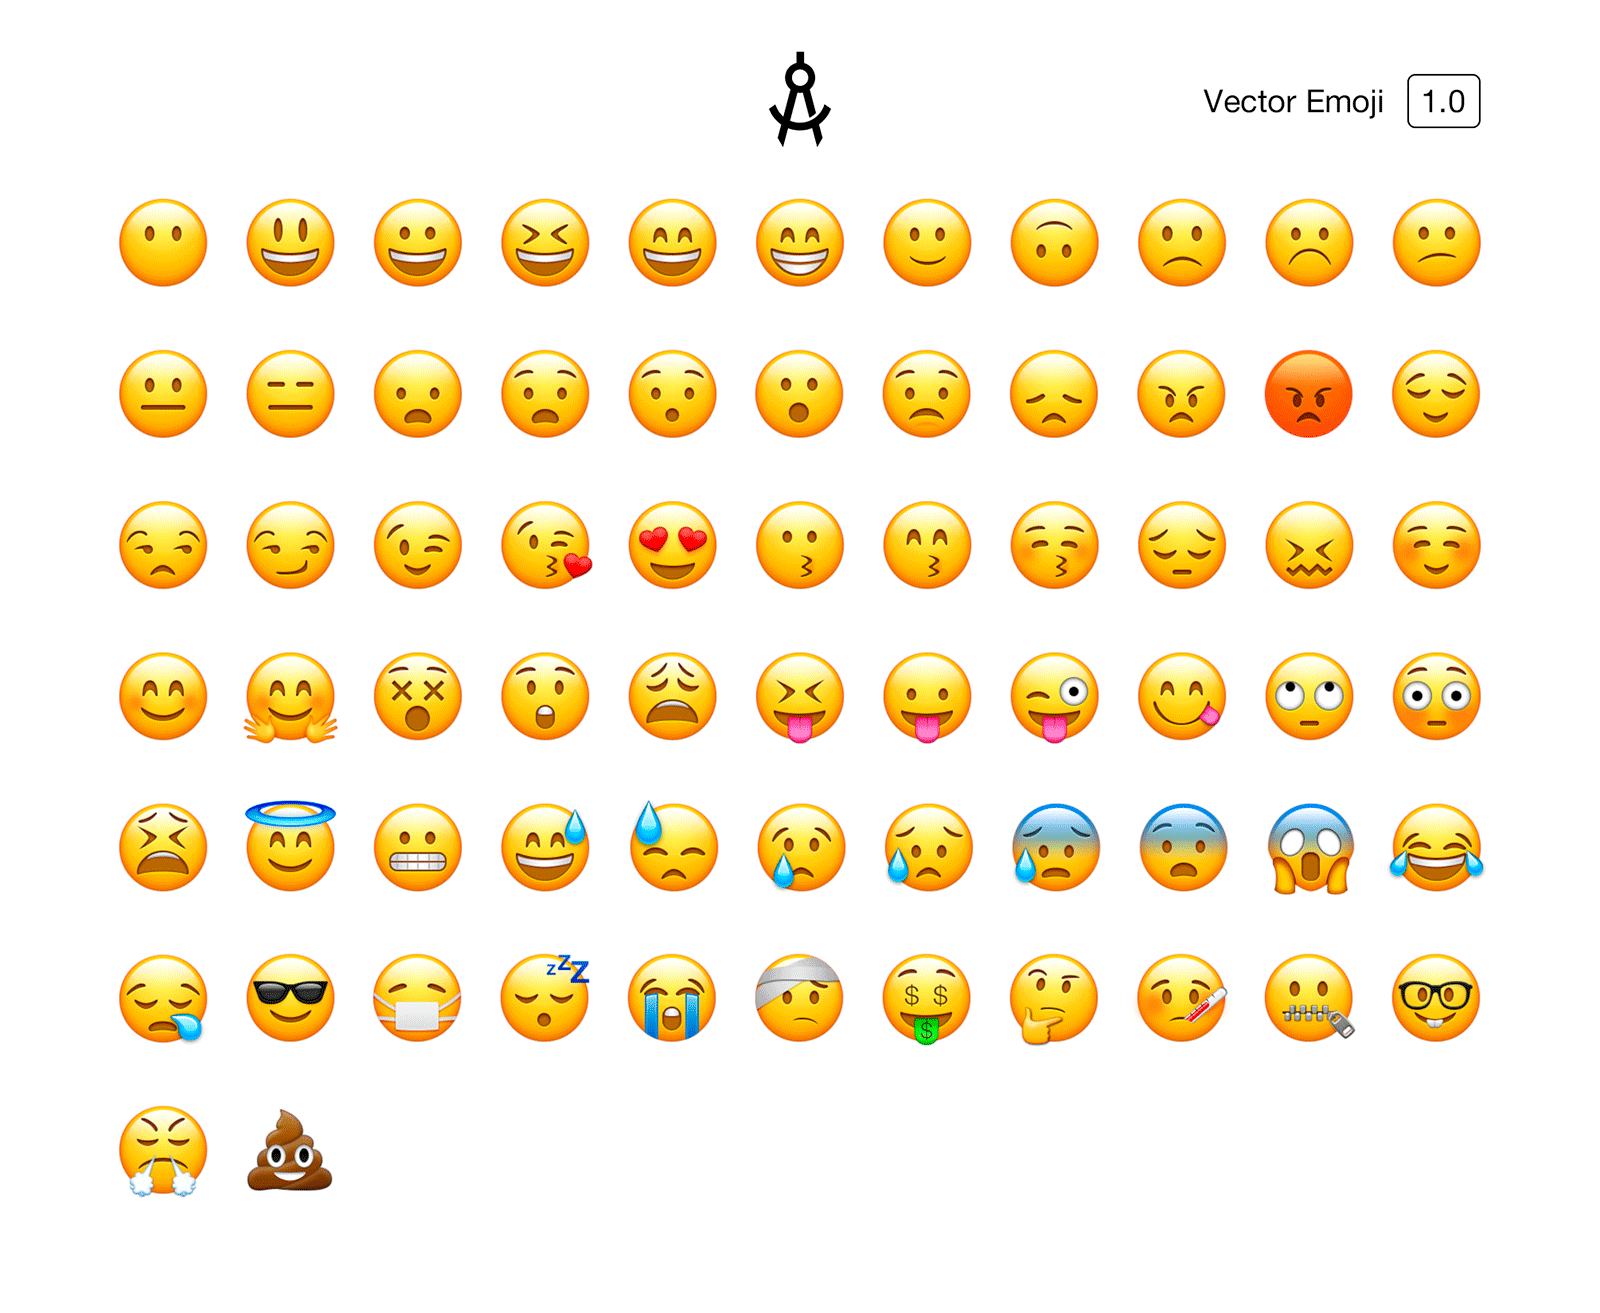 Vector Emoji Common Emojis recreated in vector  Easily edit